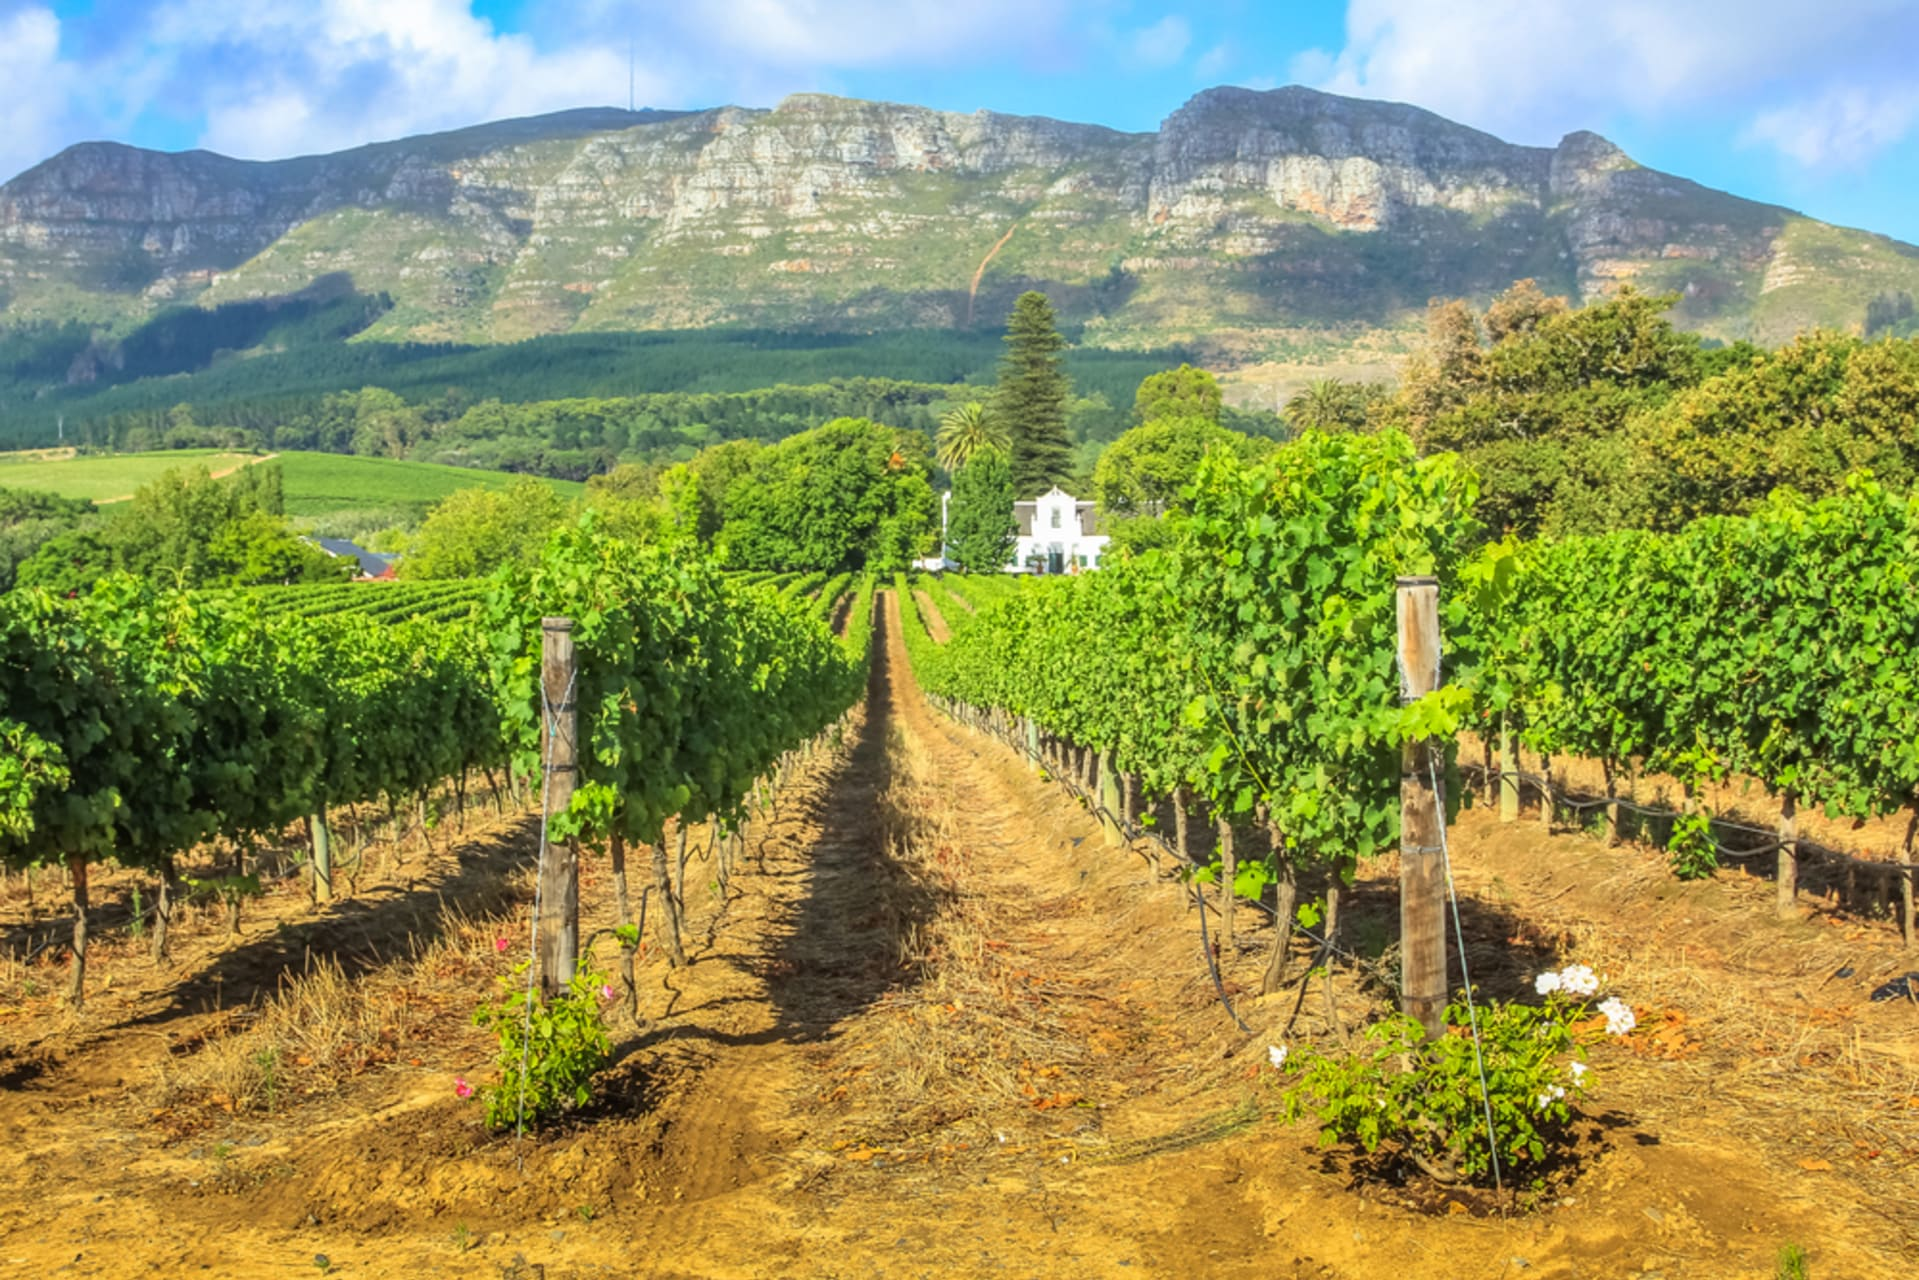 Cape Town - Winemaking and wine farms: when culture meets tradition